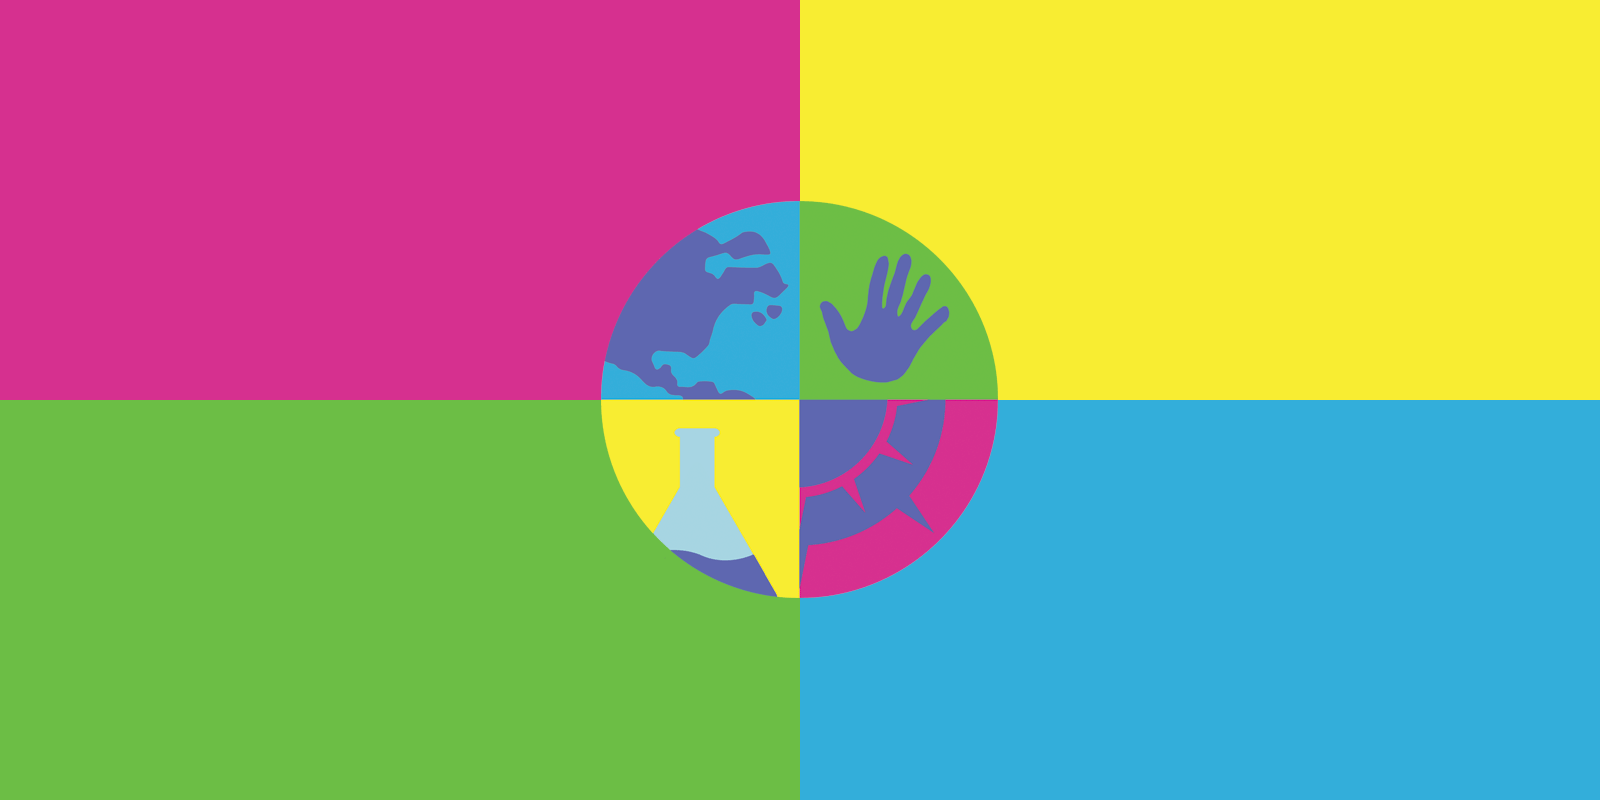 SASSA's logo - a circle split into quarters which contain a map, a hand, a fluid filled beaker, and a compass.